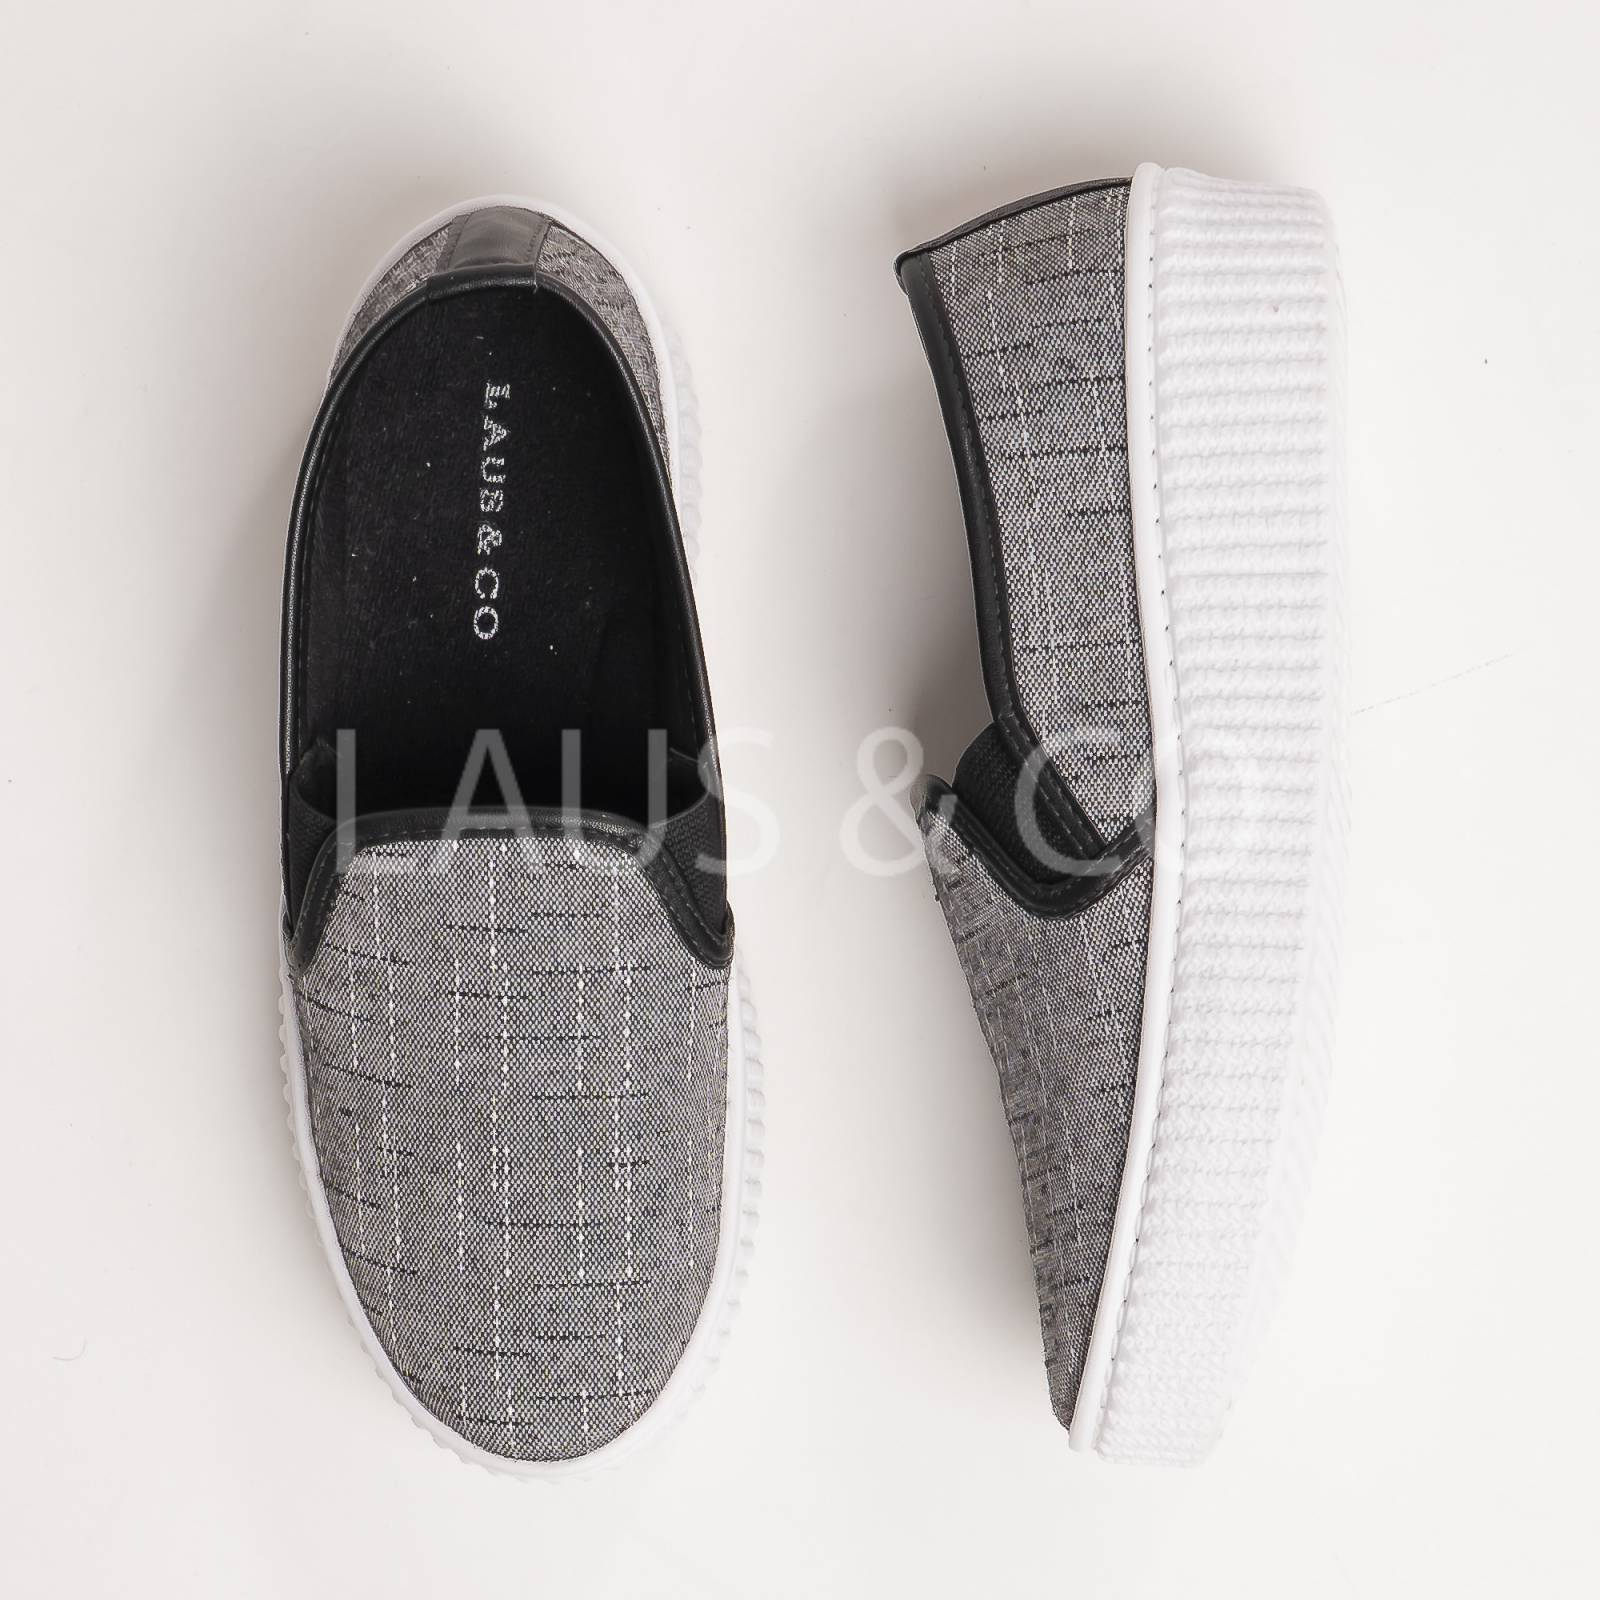 Slip-On Sola Tratorada Linho Vancouver - LAUS & CO